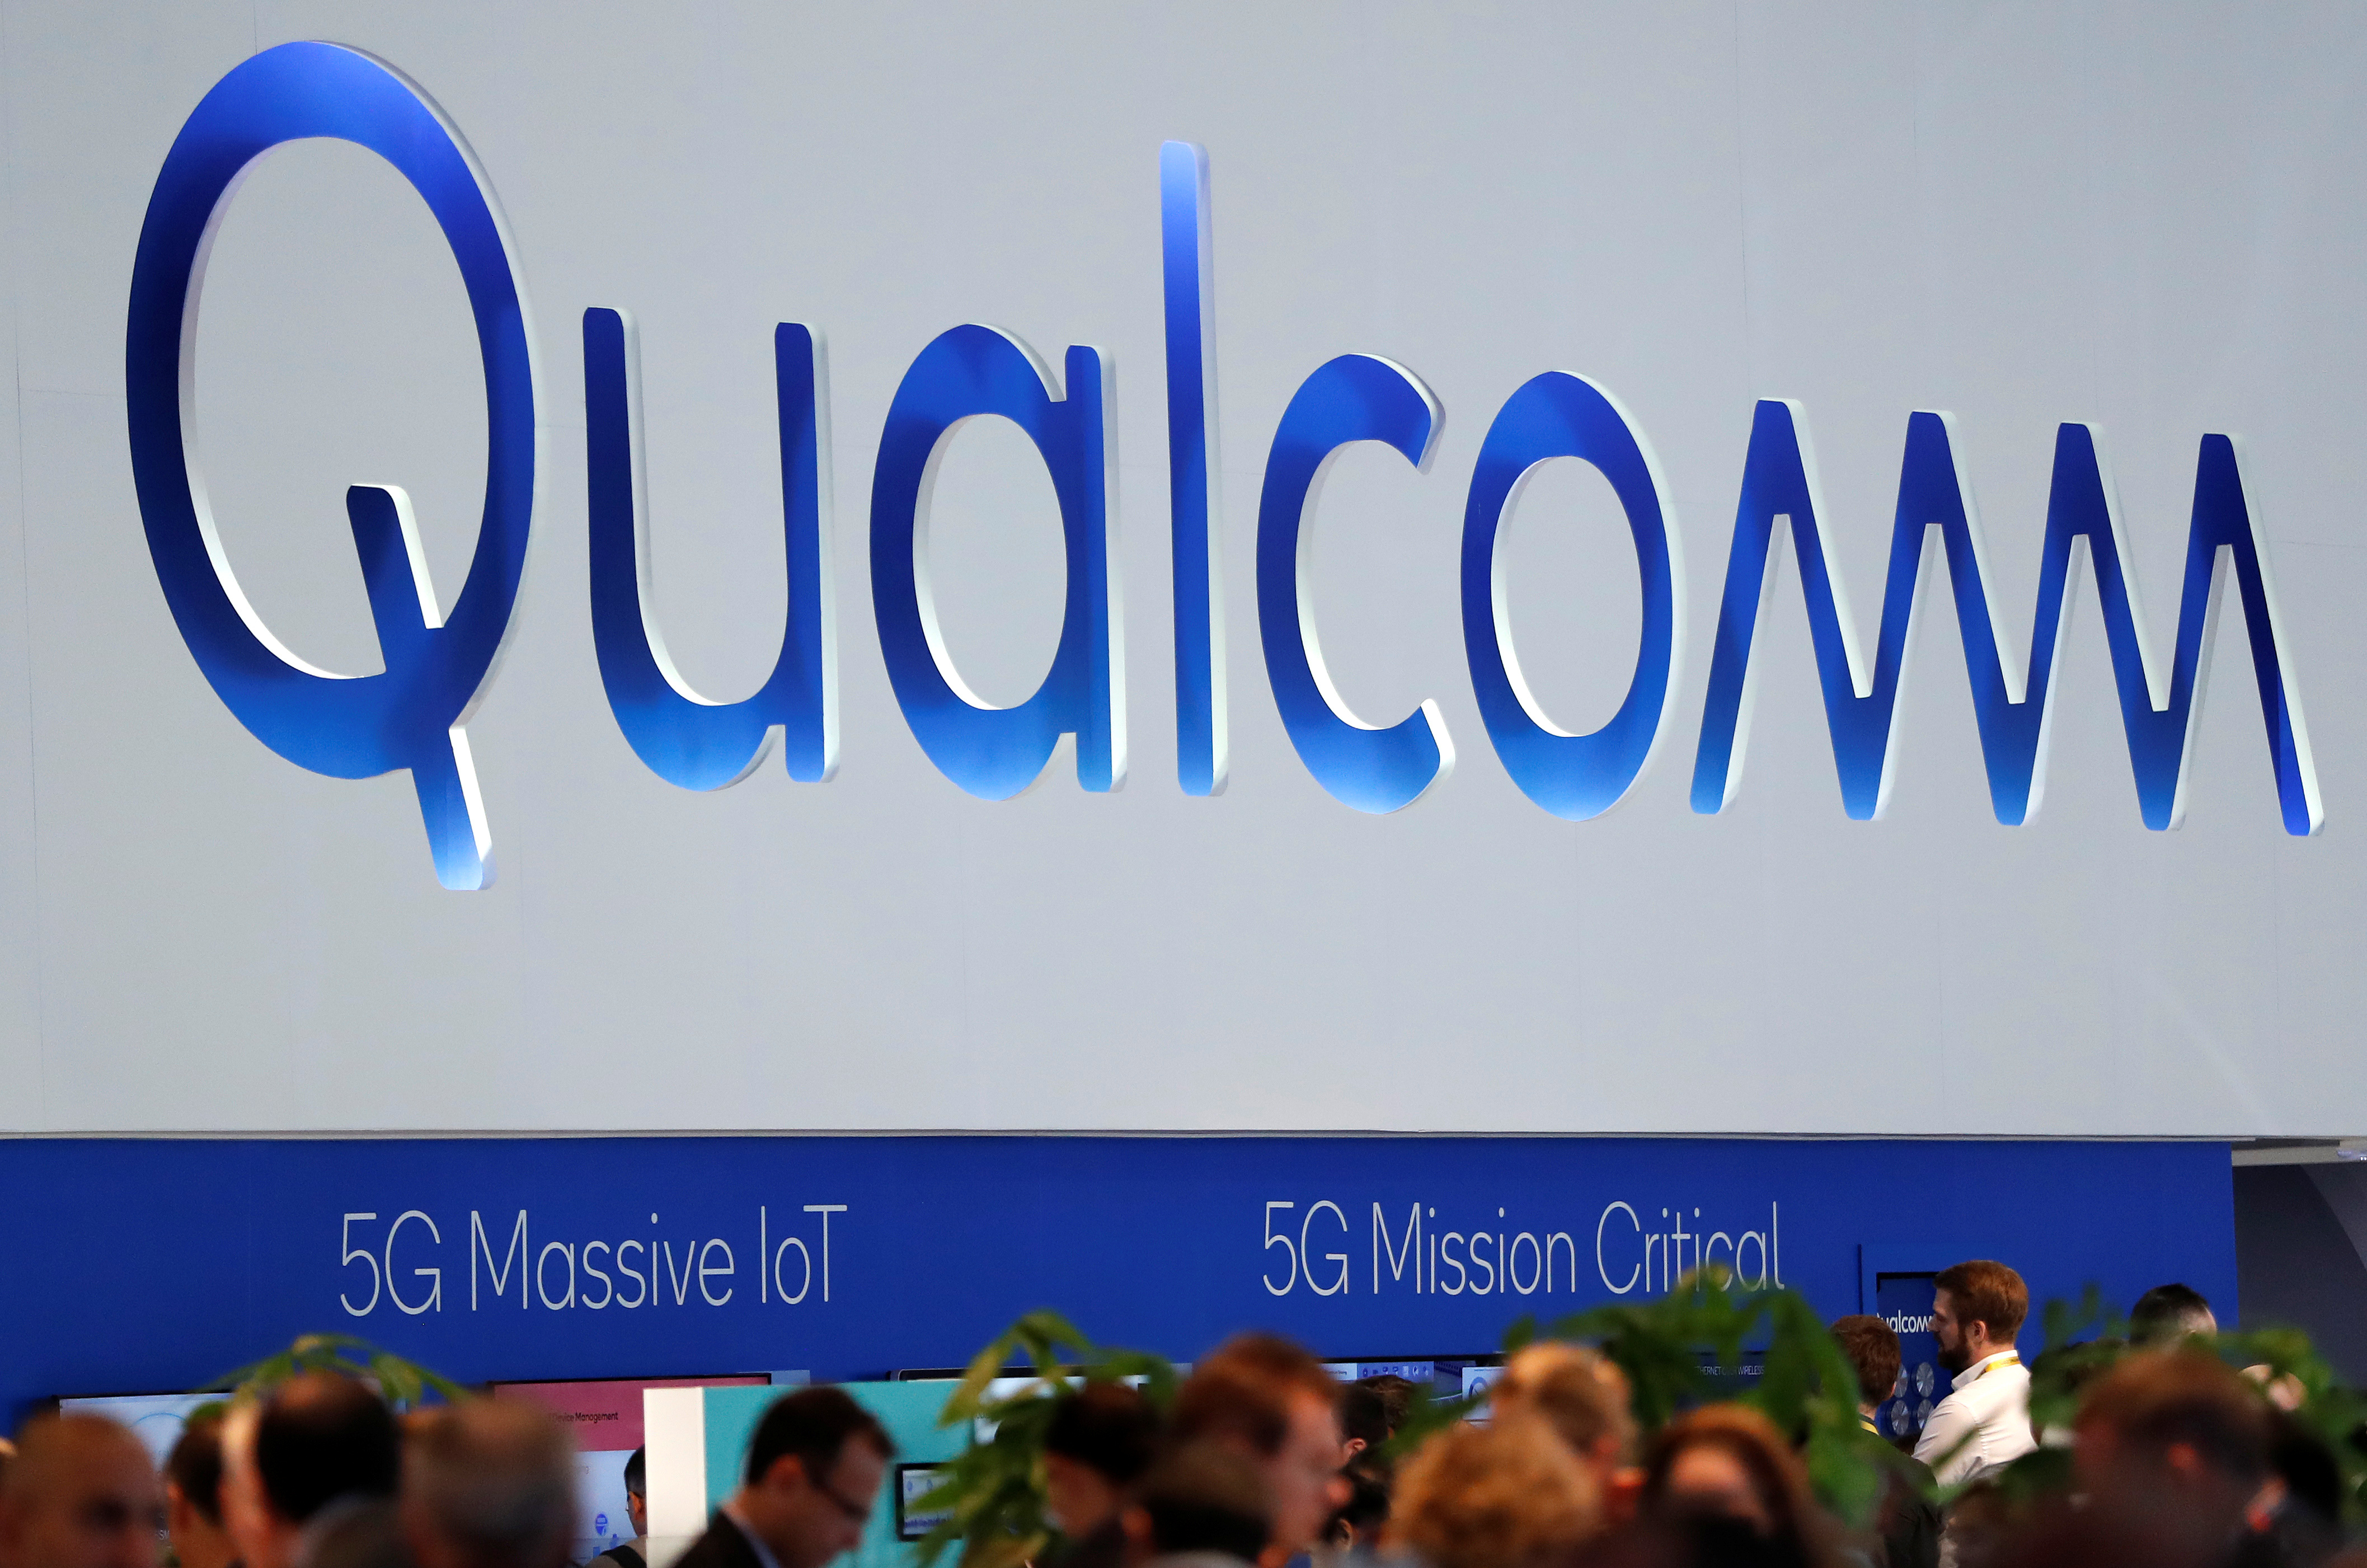 The logo of Qualcomm is seen during the Mobile World Congress in Barcelona, Spain February 27, 2018. REUTERS/Yves Herman - RC1FA3468840